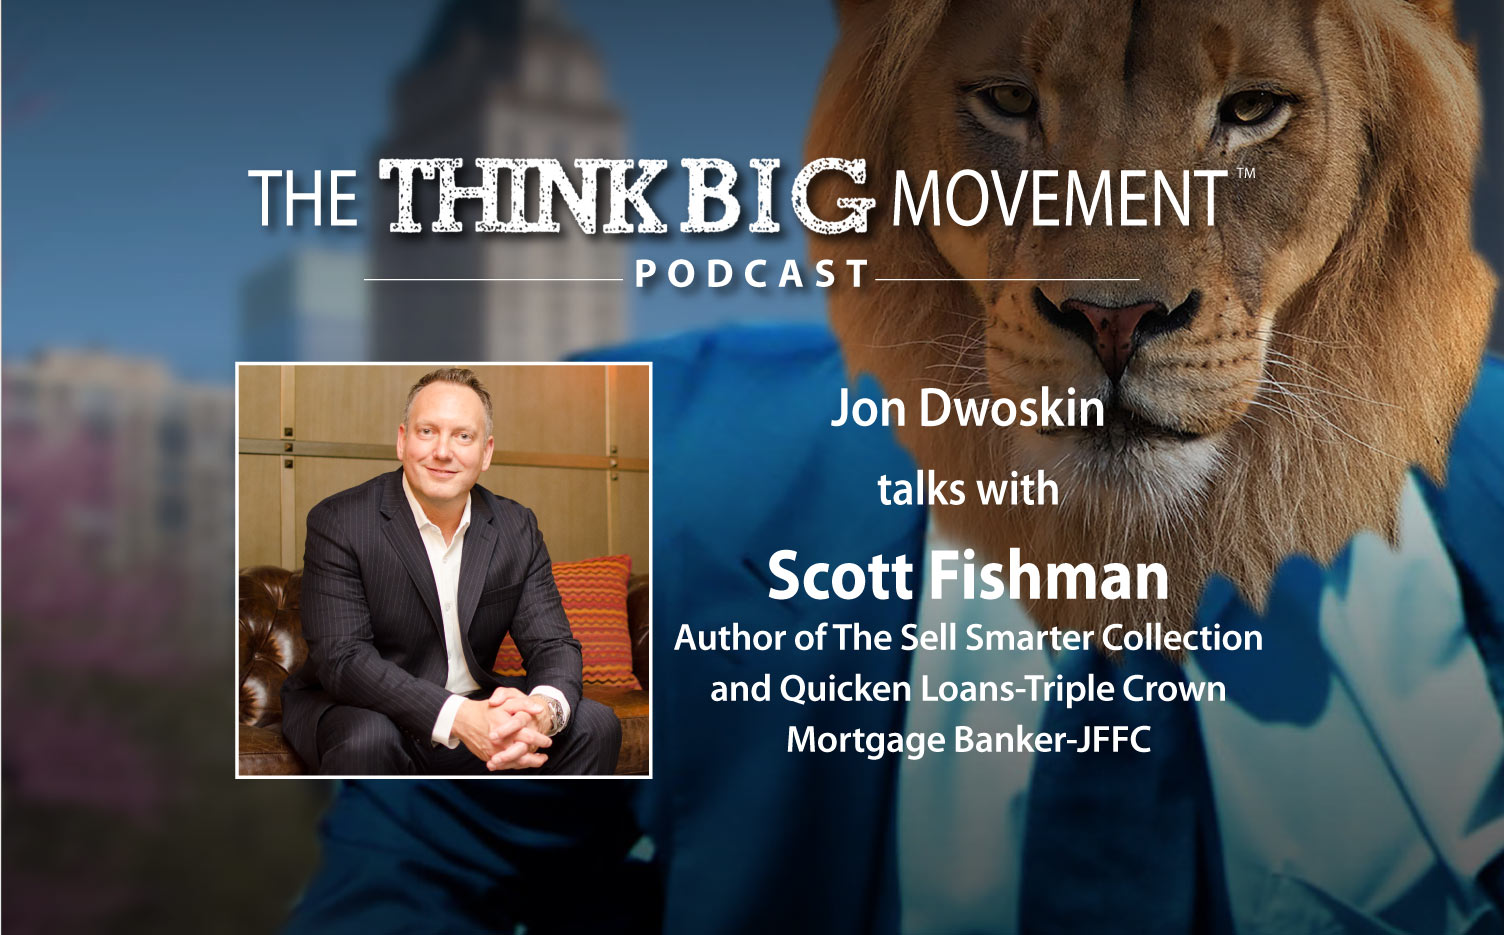 The Think Big Podcast - Jon Dwoskin Interviews Scott Fishman, Author of The Sell Smarter Collection, Quicken Loans-Triple Crown Mortgage Banker-JFFC